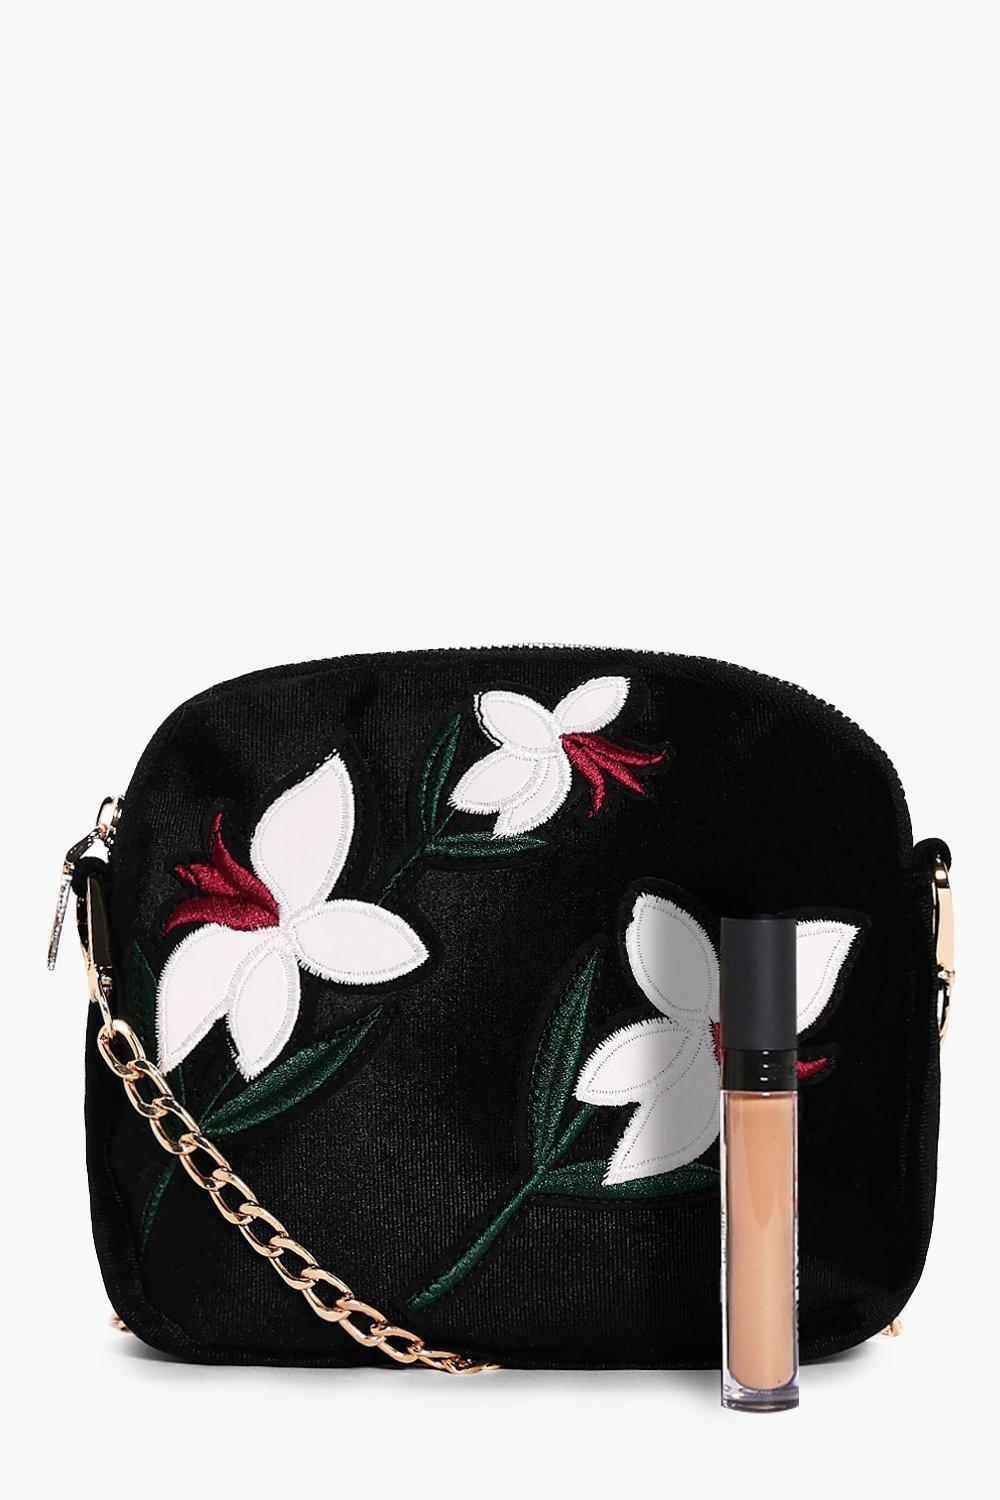 Boohoo Maisie Embroidered Cross Body Bag in White